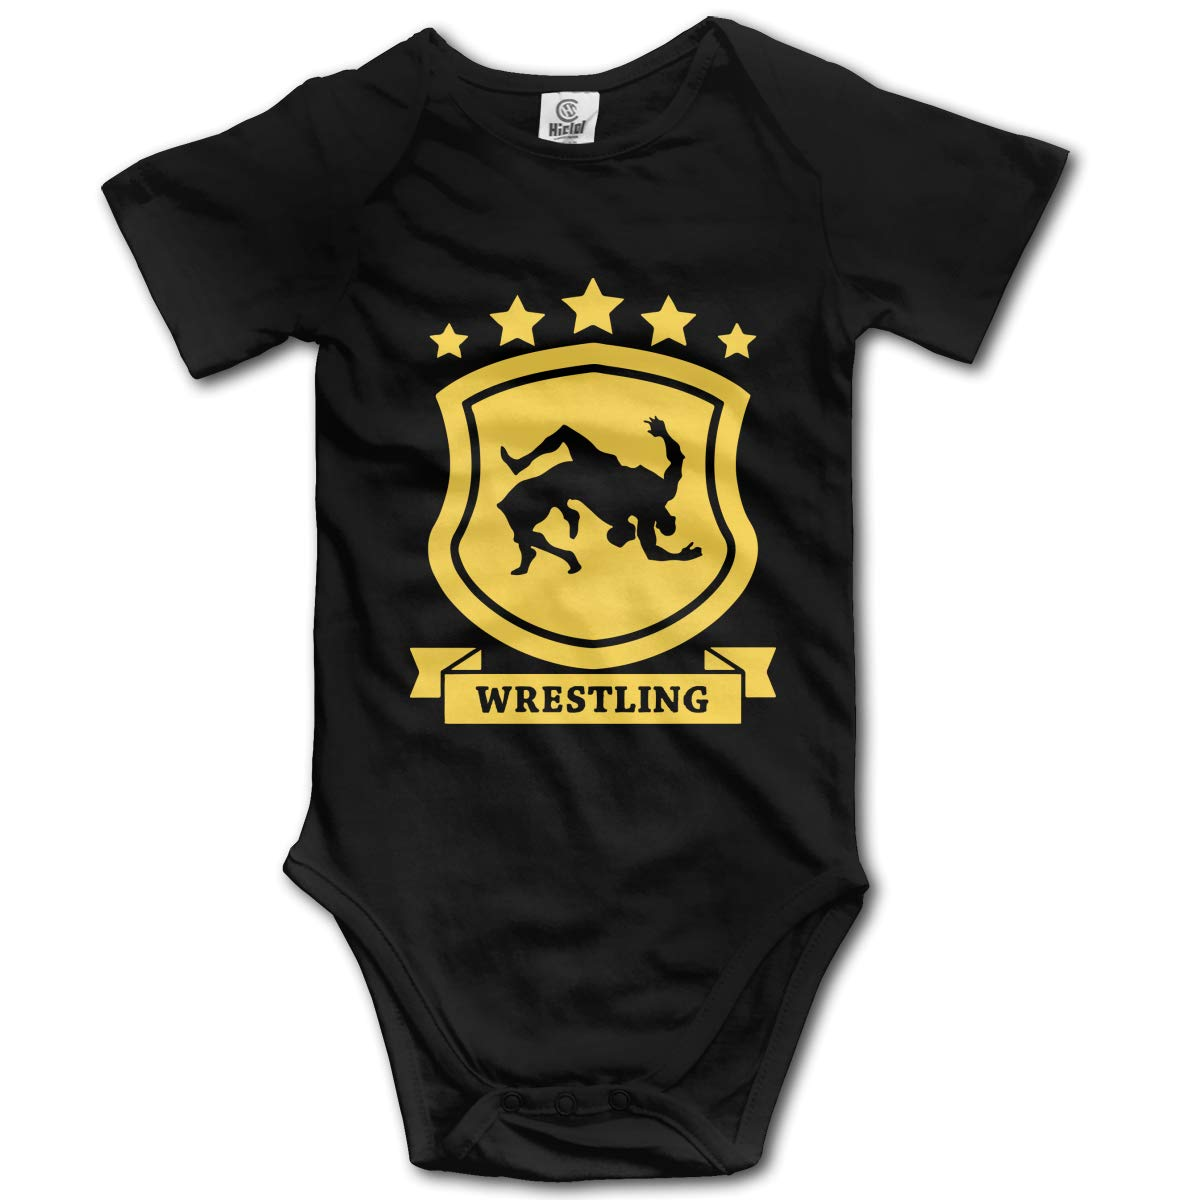 J122 Wrestling 1 Suit 6-24 Months Baby Short Sleeve Climbing Clothes